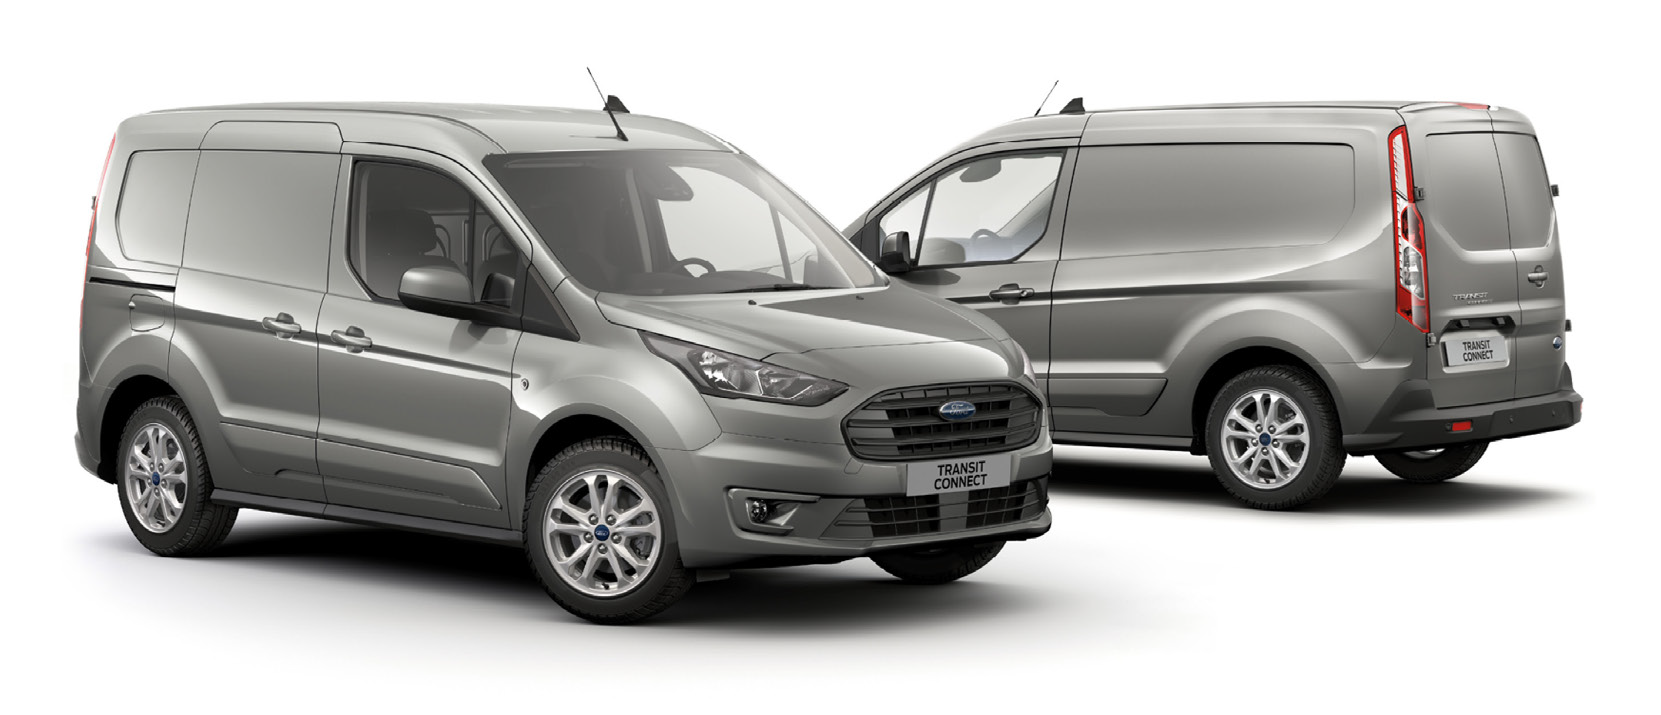 Ford Transit Connect Limited variant